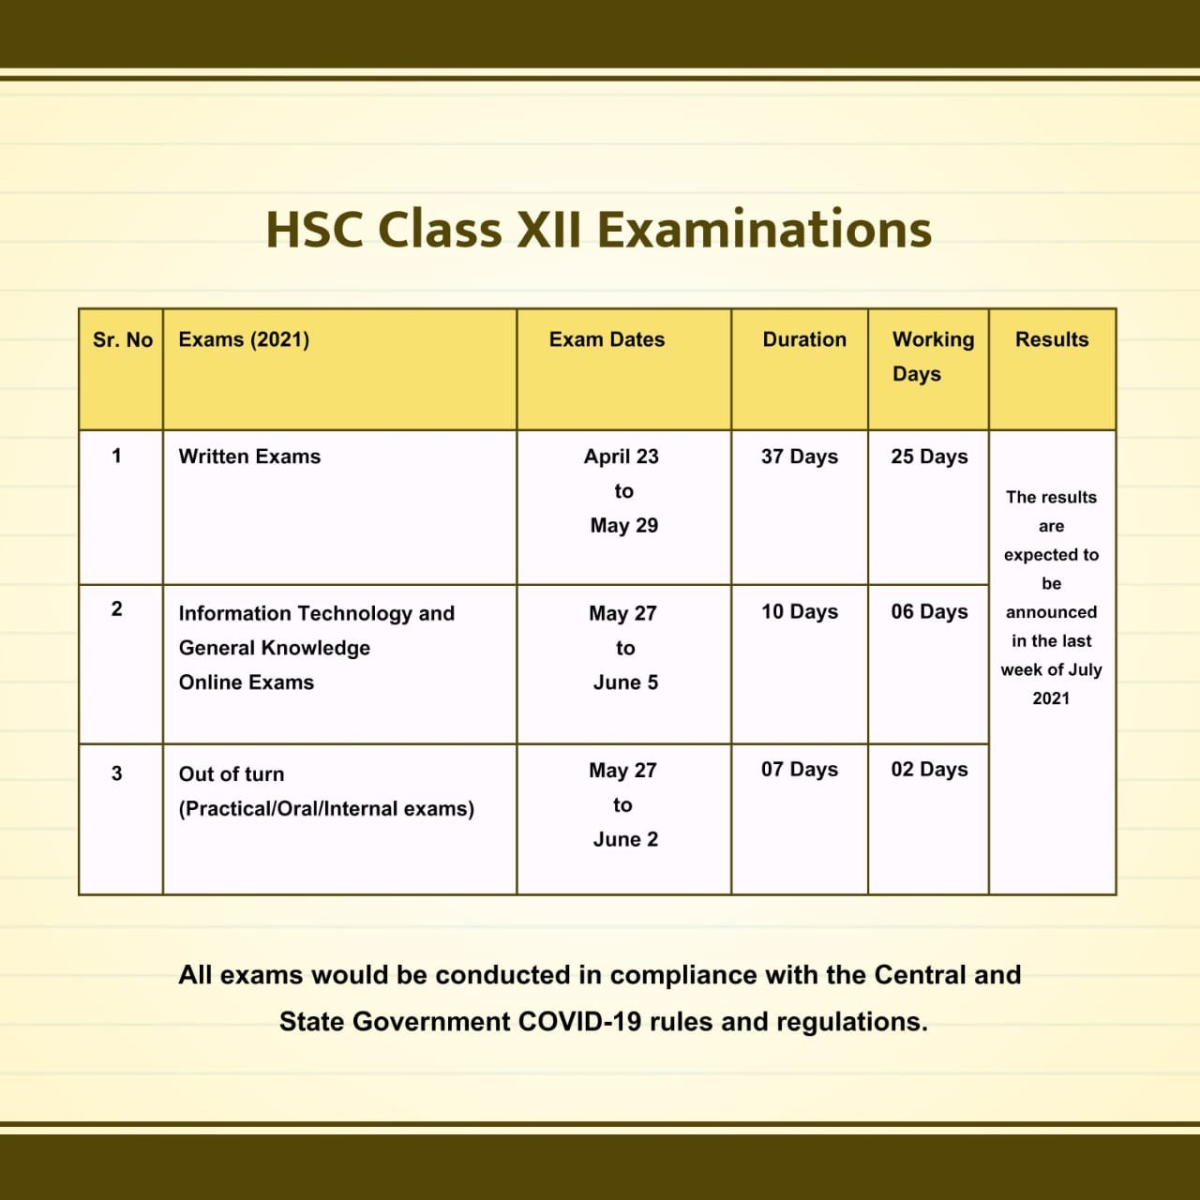 HSC exams (written) will be held from 23 April to 29 May.